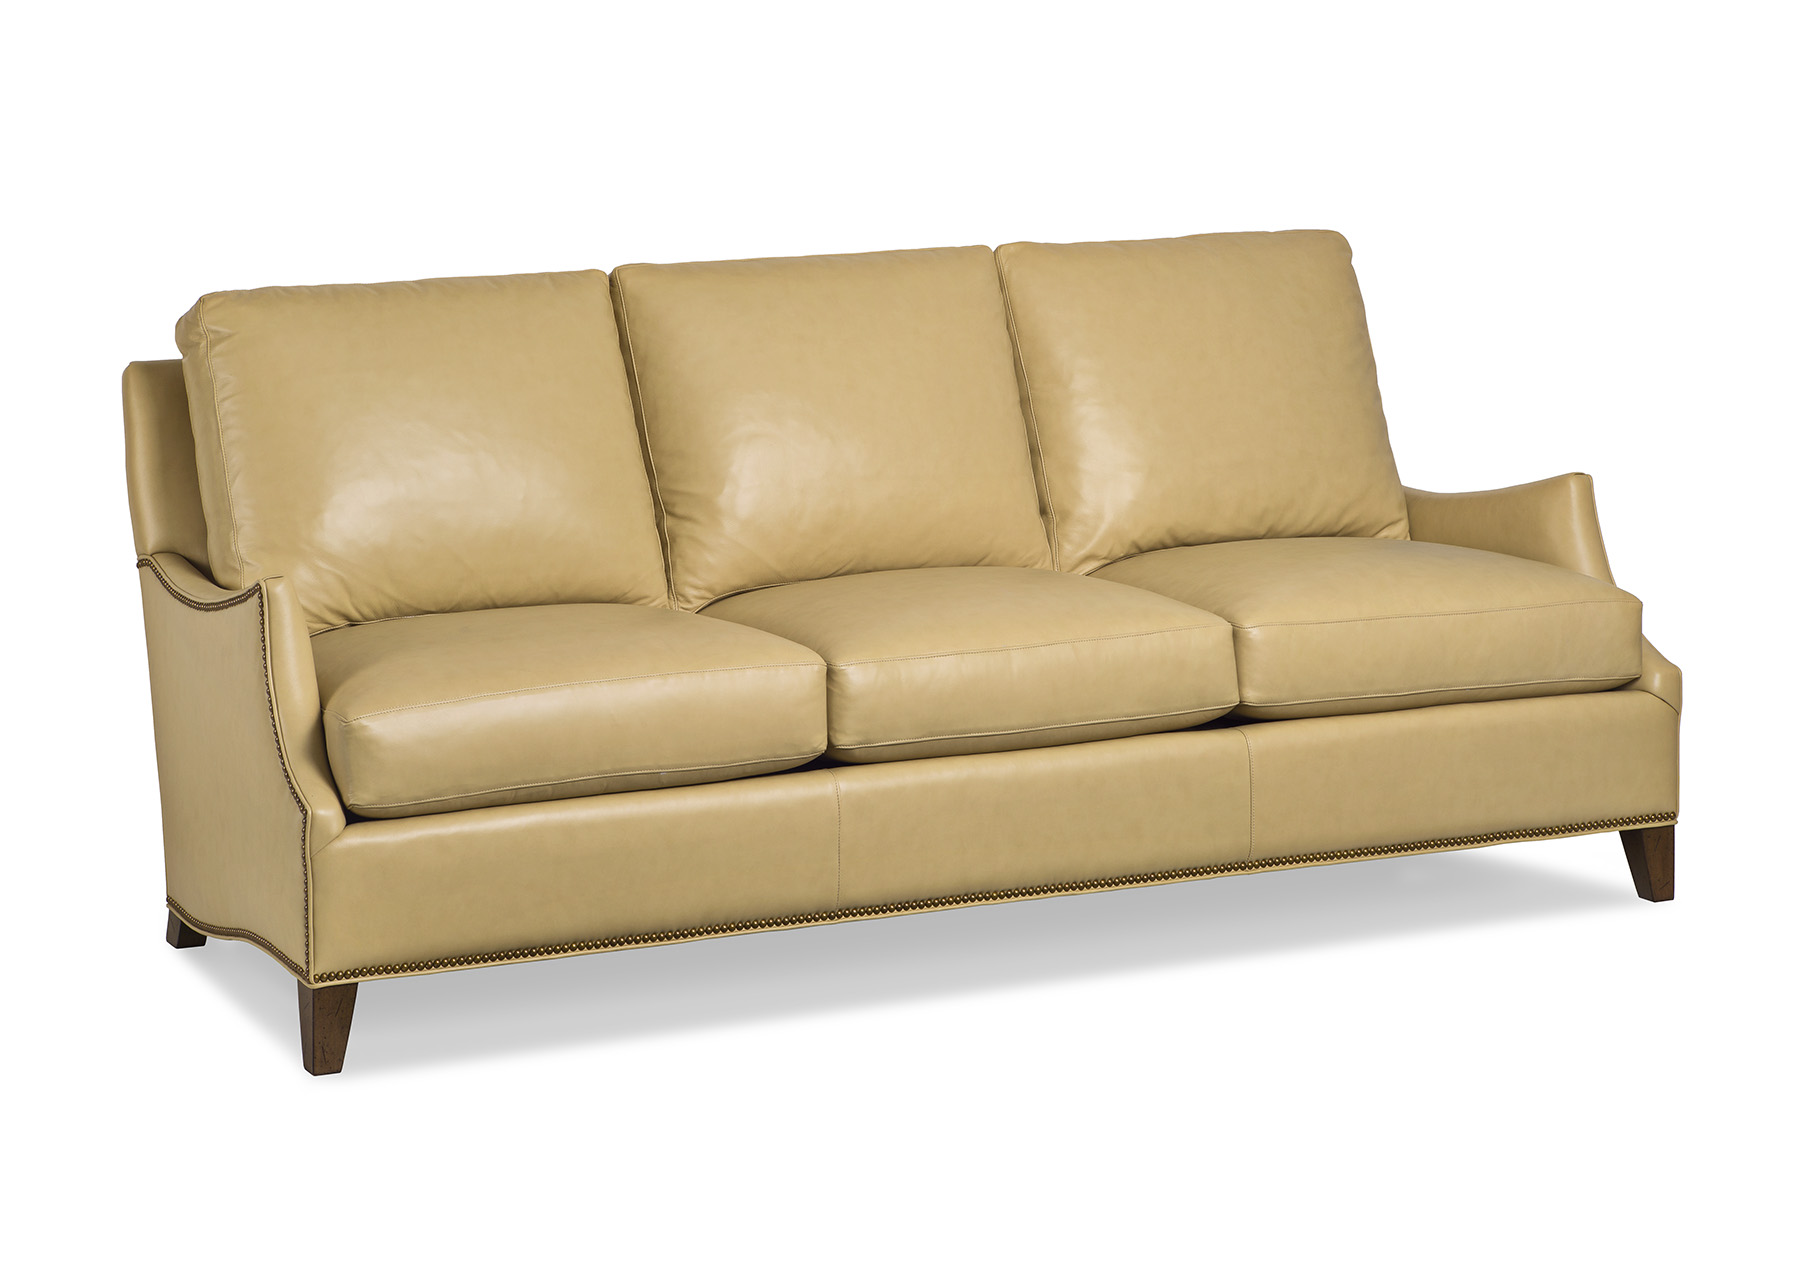 Hopewell Sofa 1